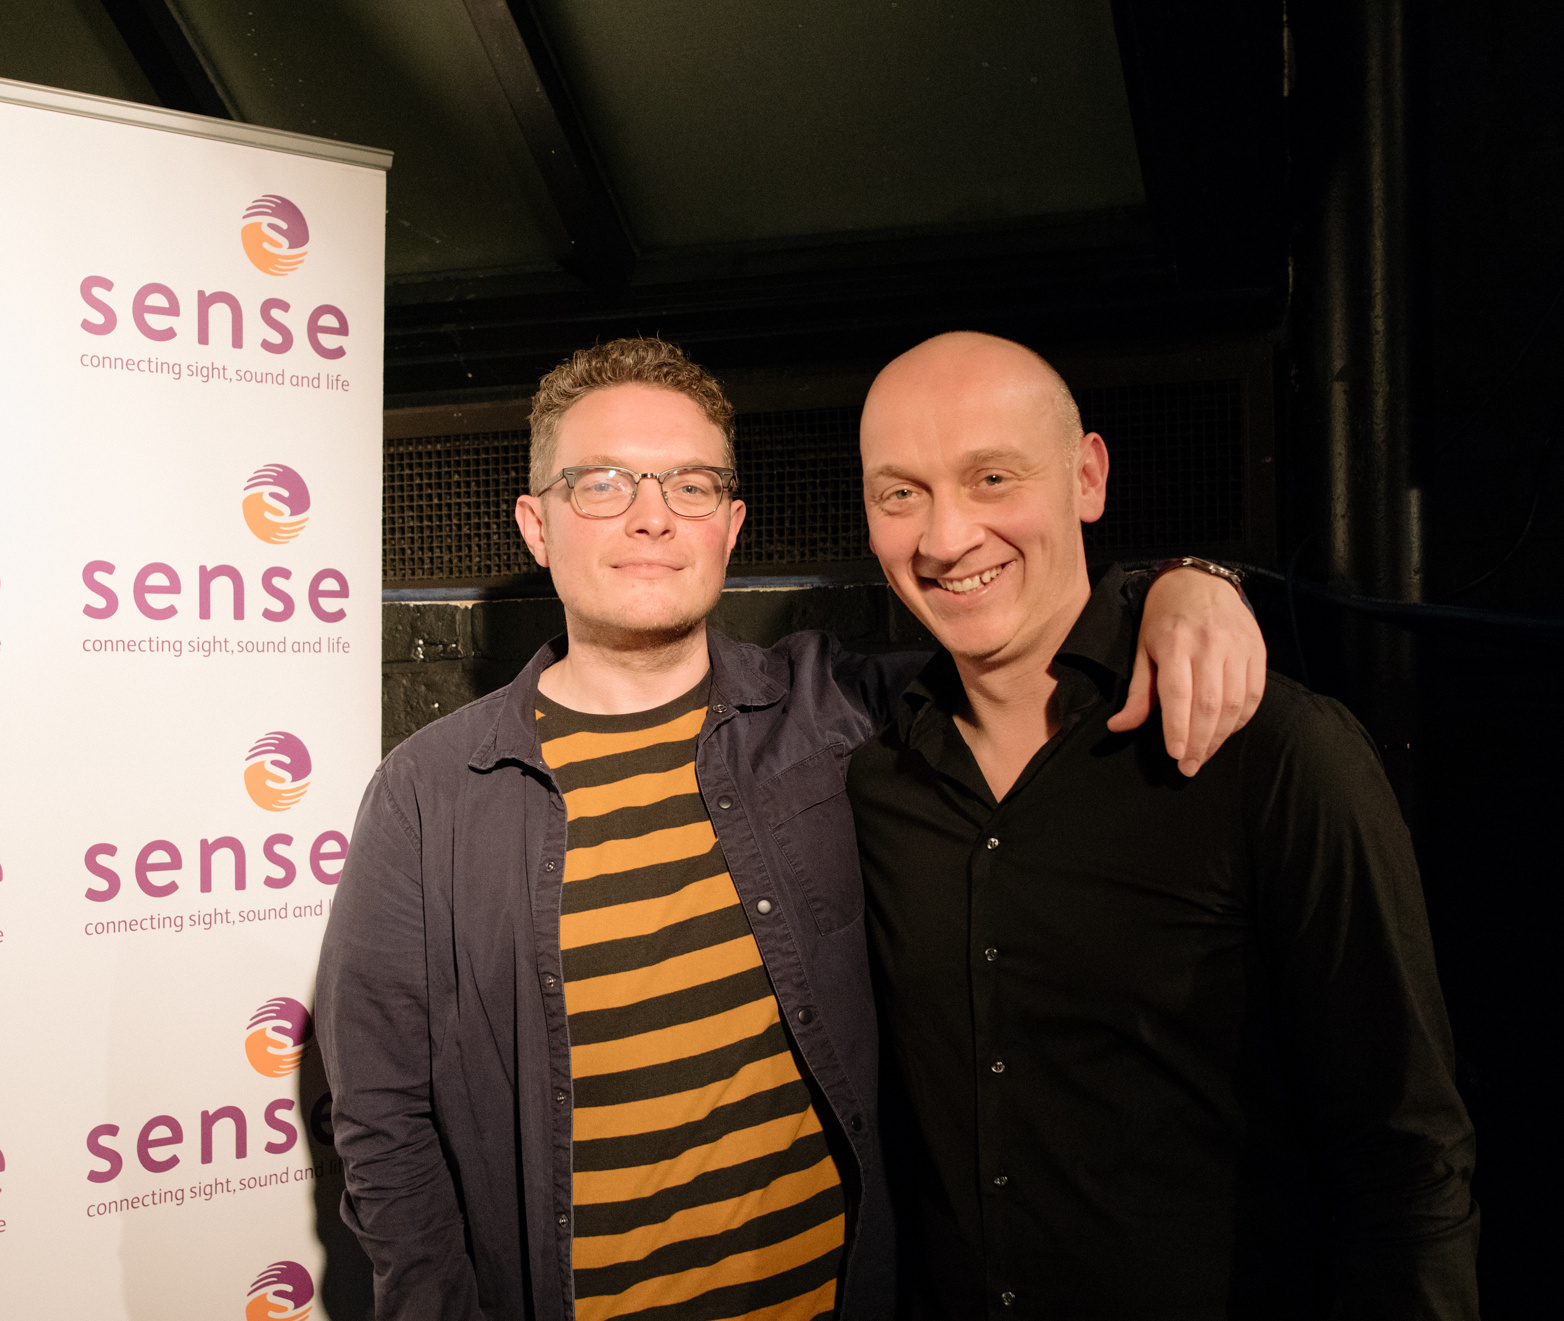 Brothers Stu Mather and Tim Mather have been recognised for their fundraising work for Sense